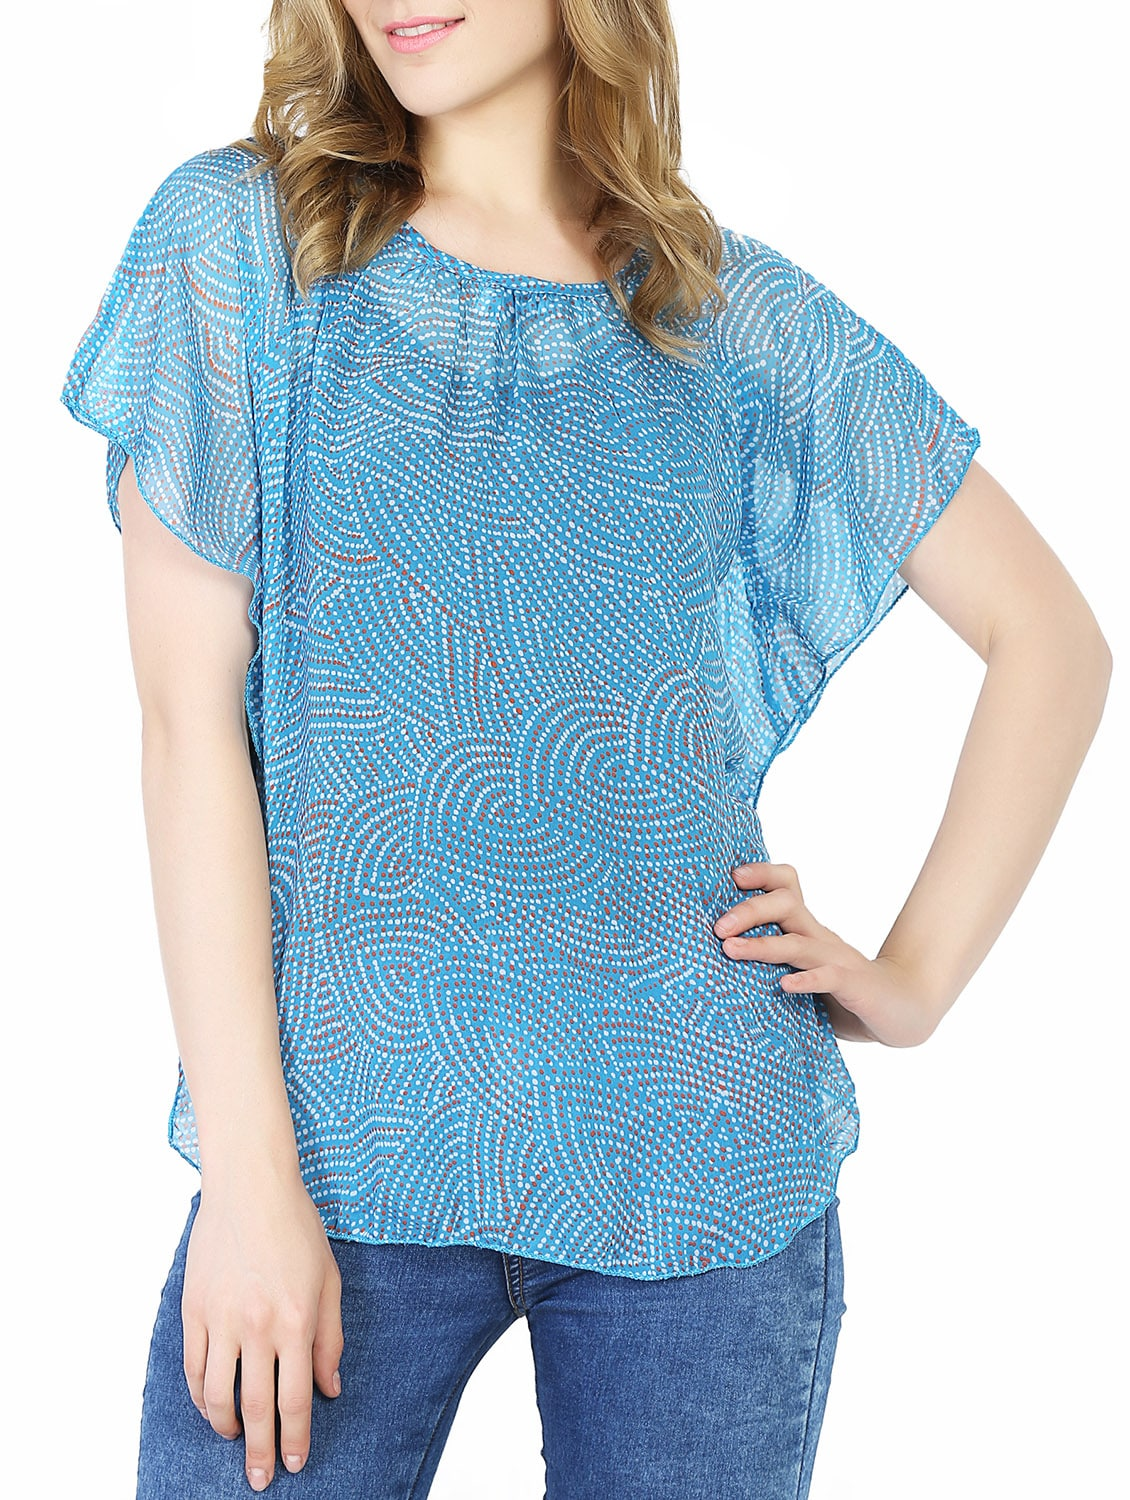 af3d2d5e7 Buy Blue Chiffon Printed Kimono Sleeved Top for Women from Damak for ₹405  at 42% off | 2019 Limeroad.com